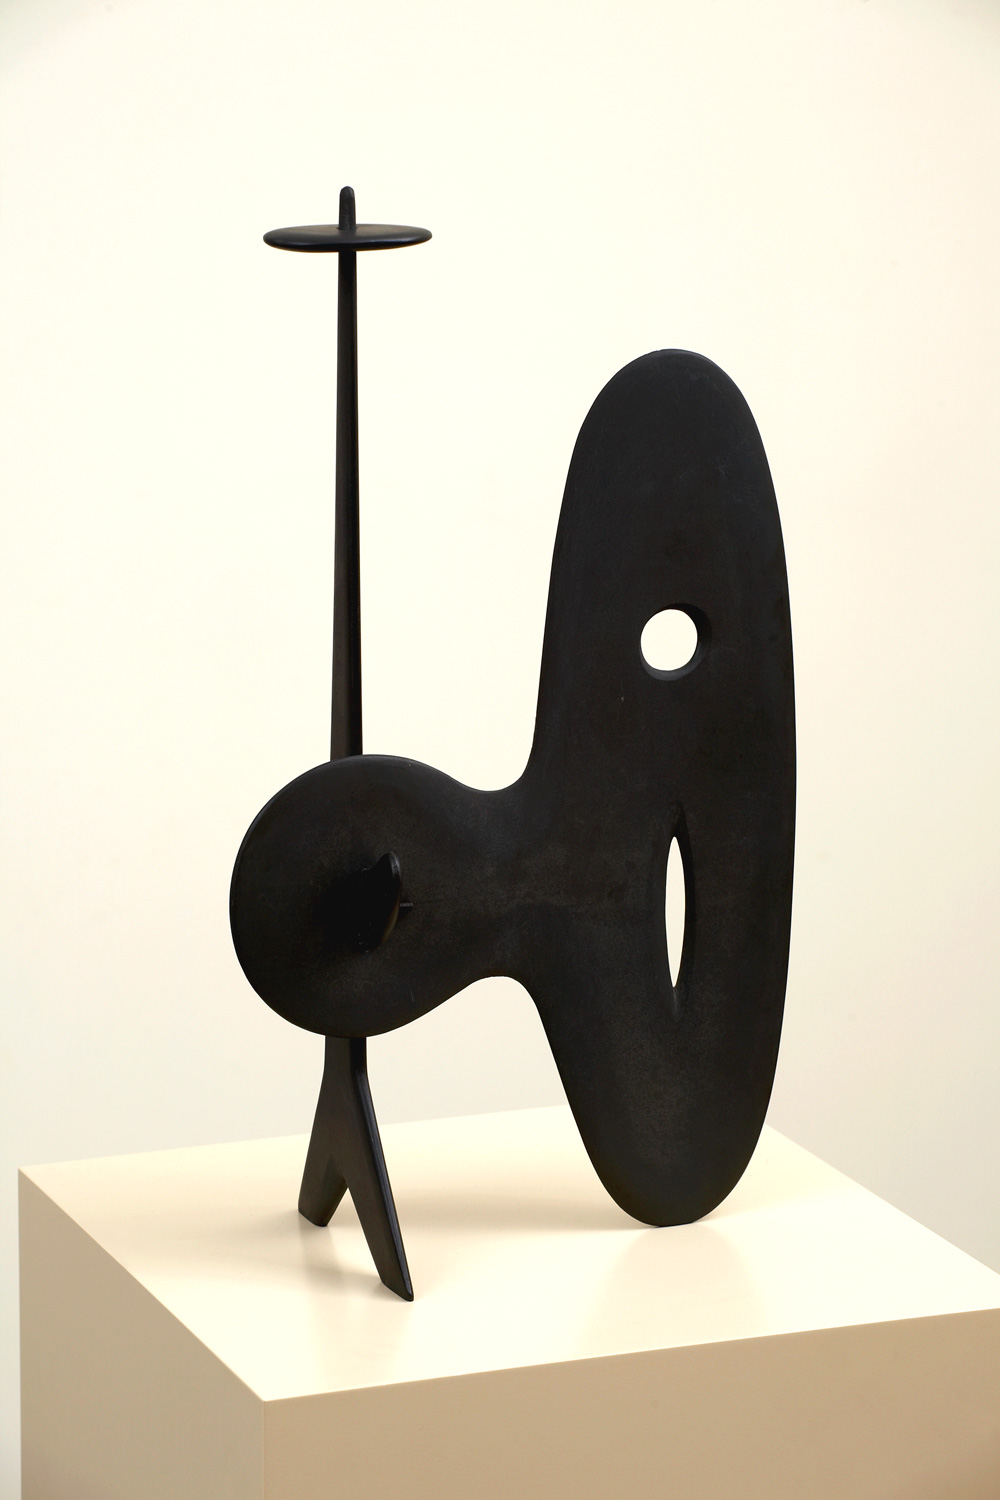 ISAMU NOGUCHI  (1904 - 1988)   Untitled , c. 1945 Slate 19 1/4 x 11 x 6 inches Newark Museum, Newark, NJ